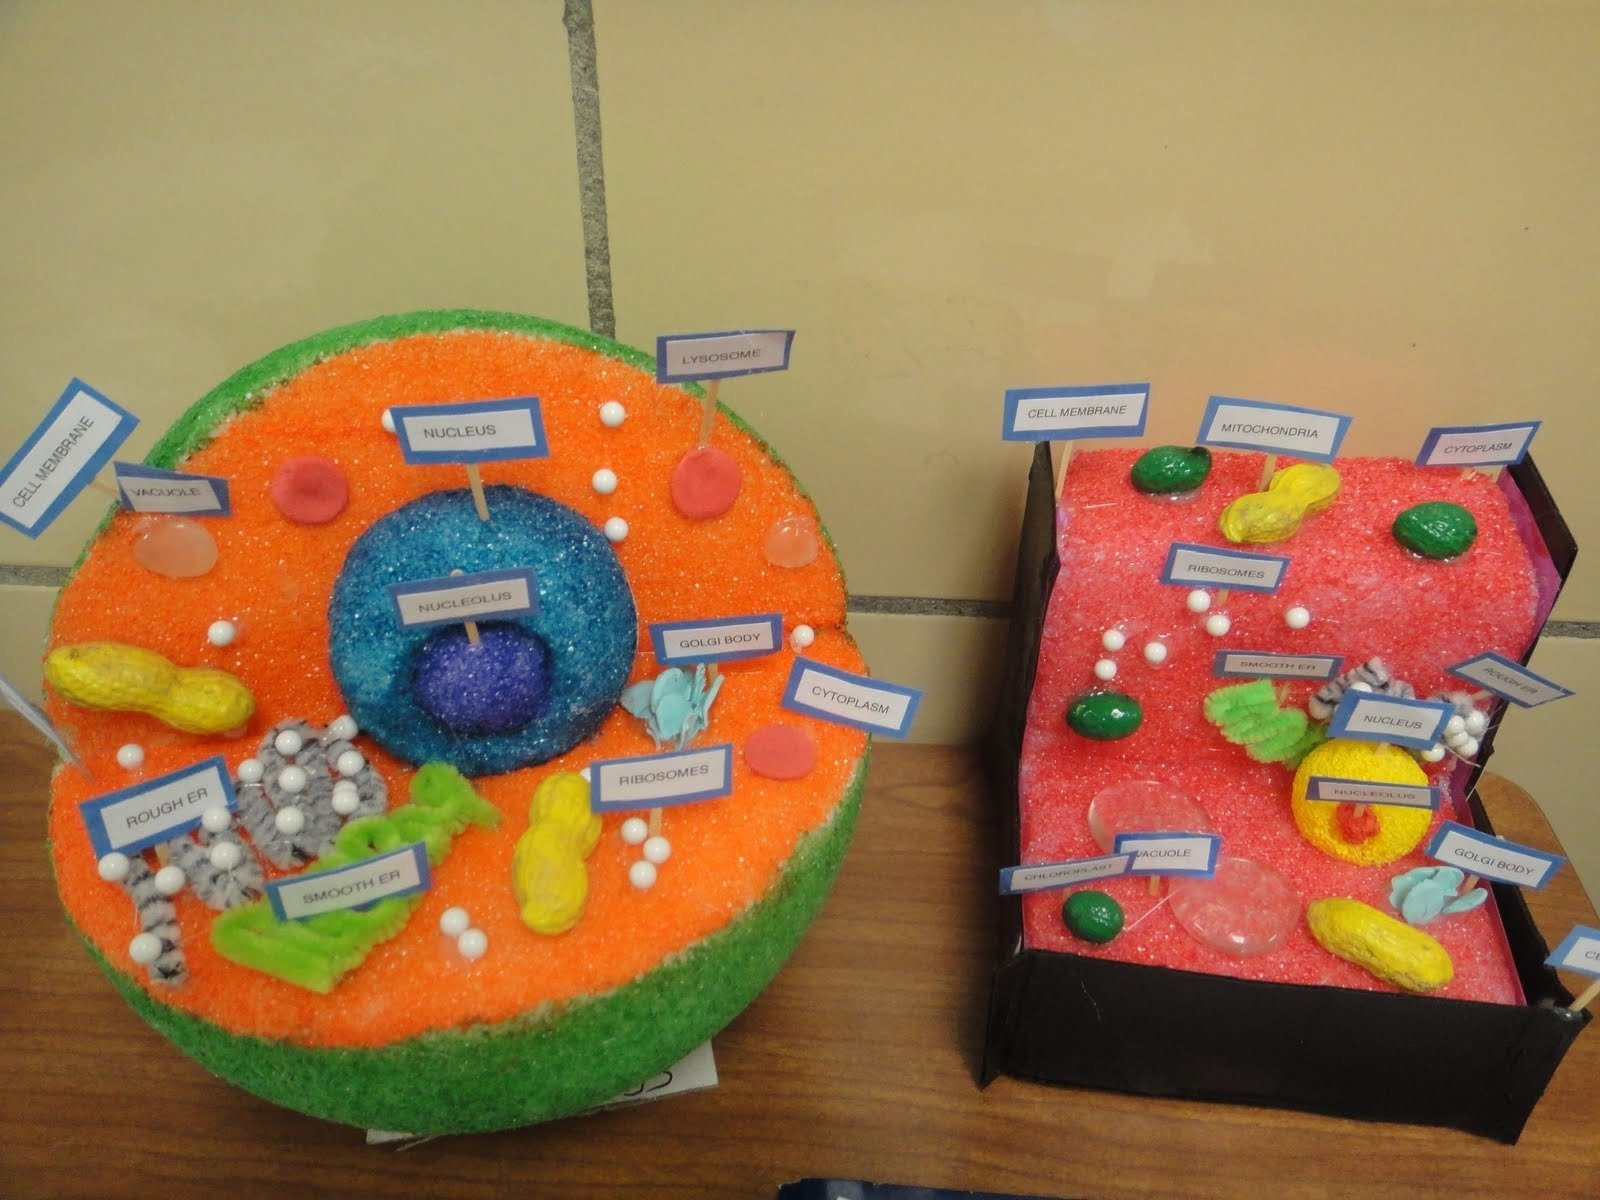 10 beautiful plant cell project ideas for kids 10 beautiful plant cell project ideas for kids katies klassroom cell functions project 5th grade ccuart Choice Image